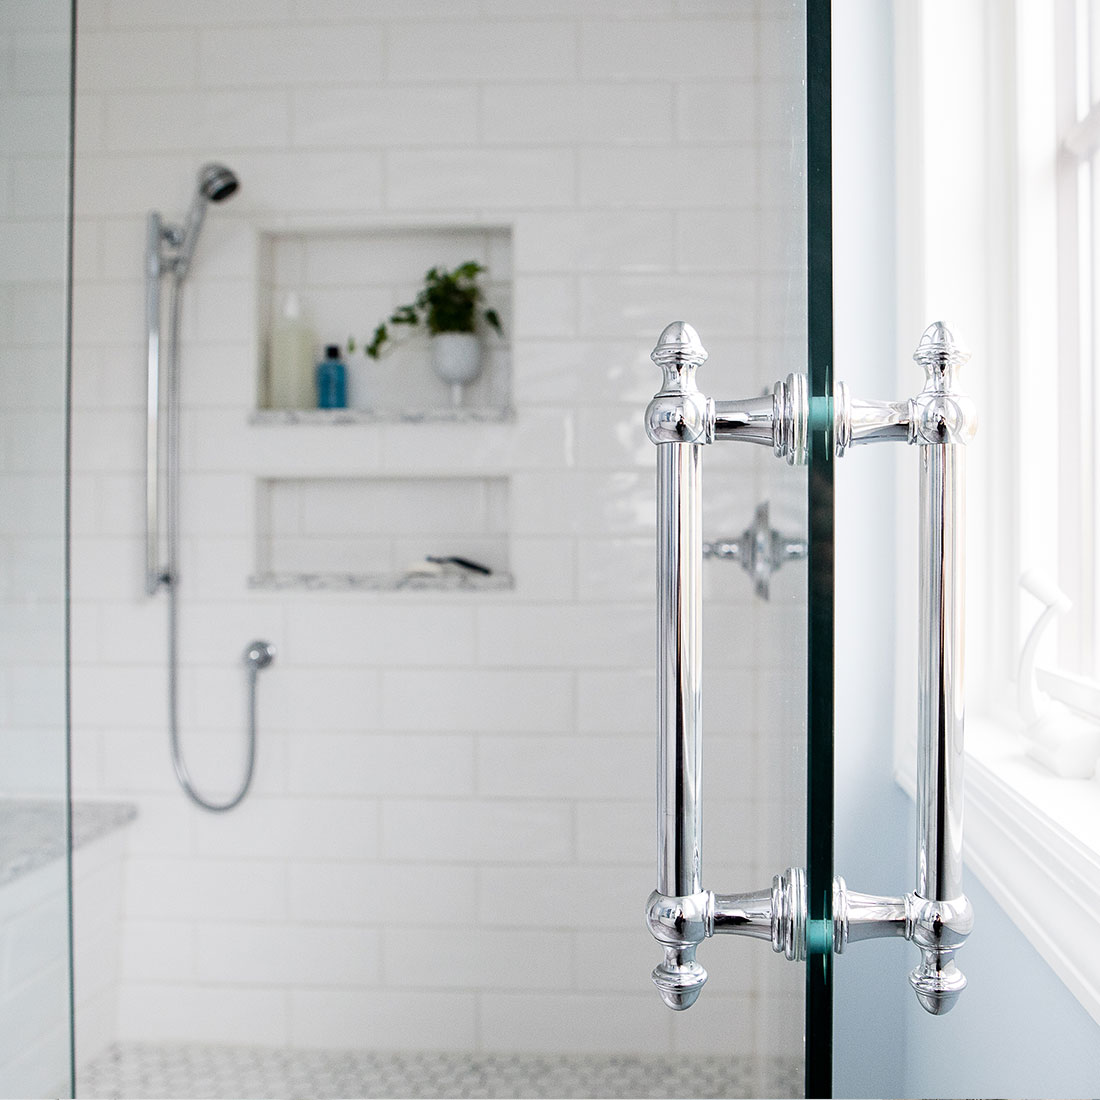 Chrome handle on glass shower enclosure in renovated bath